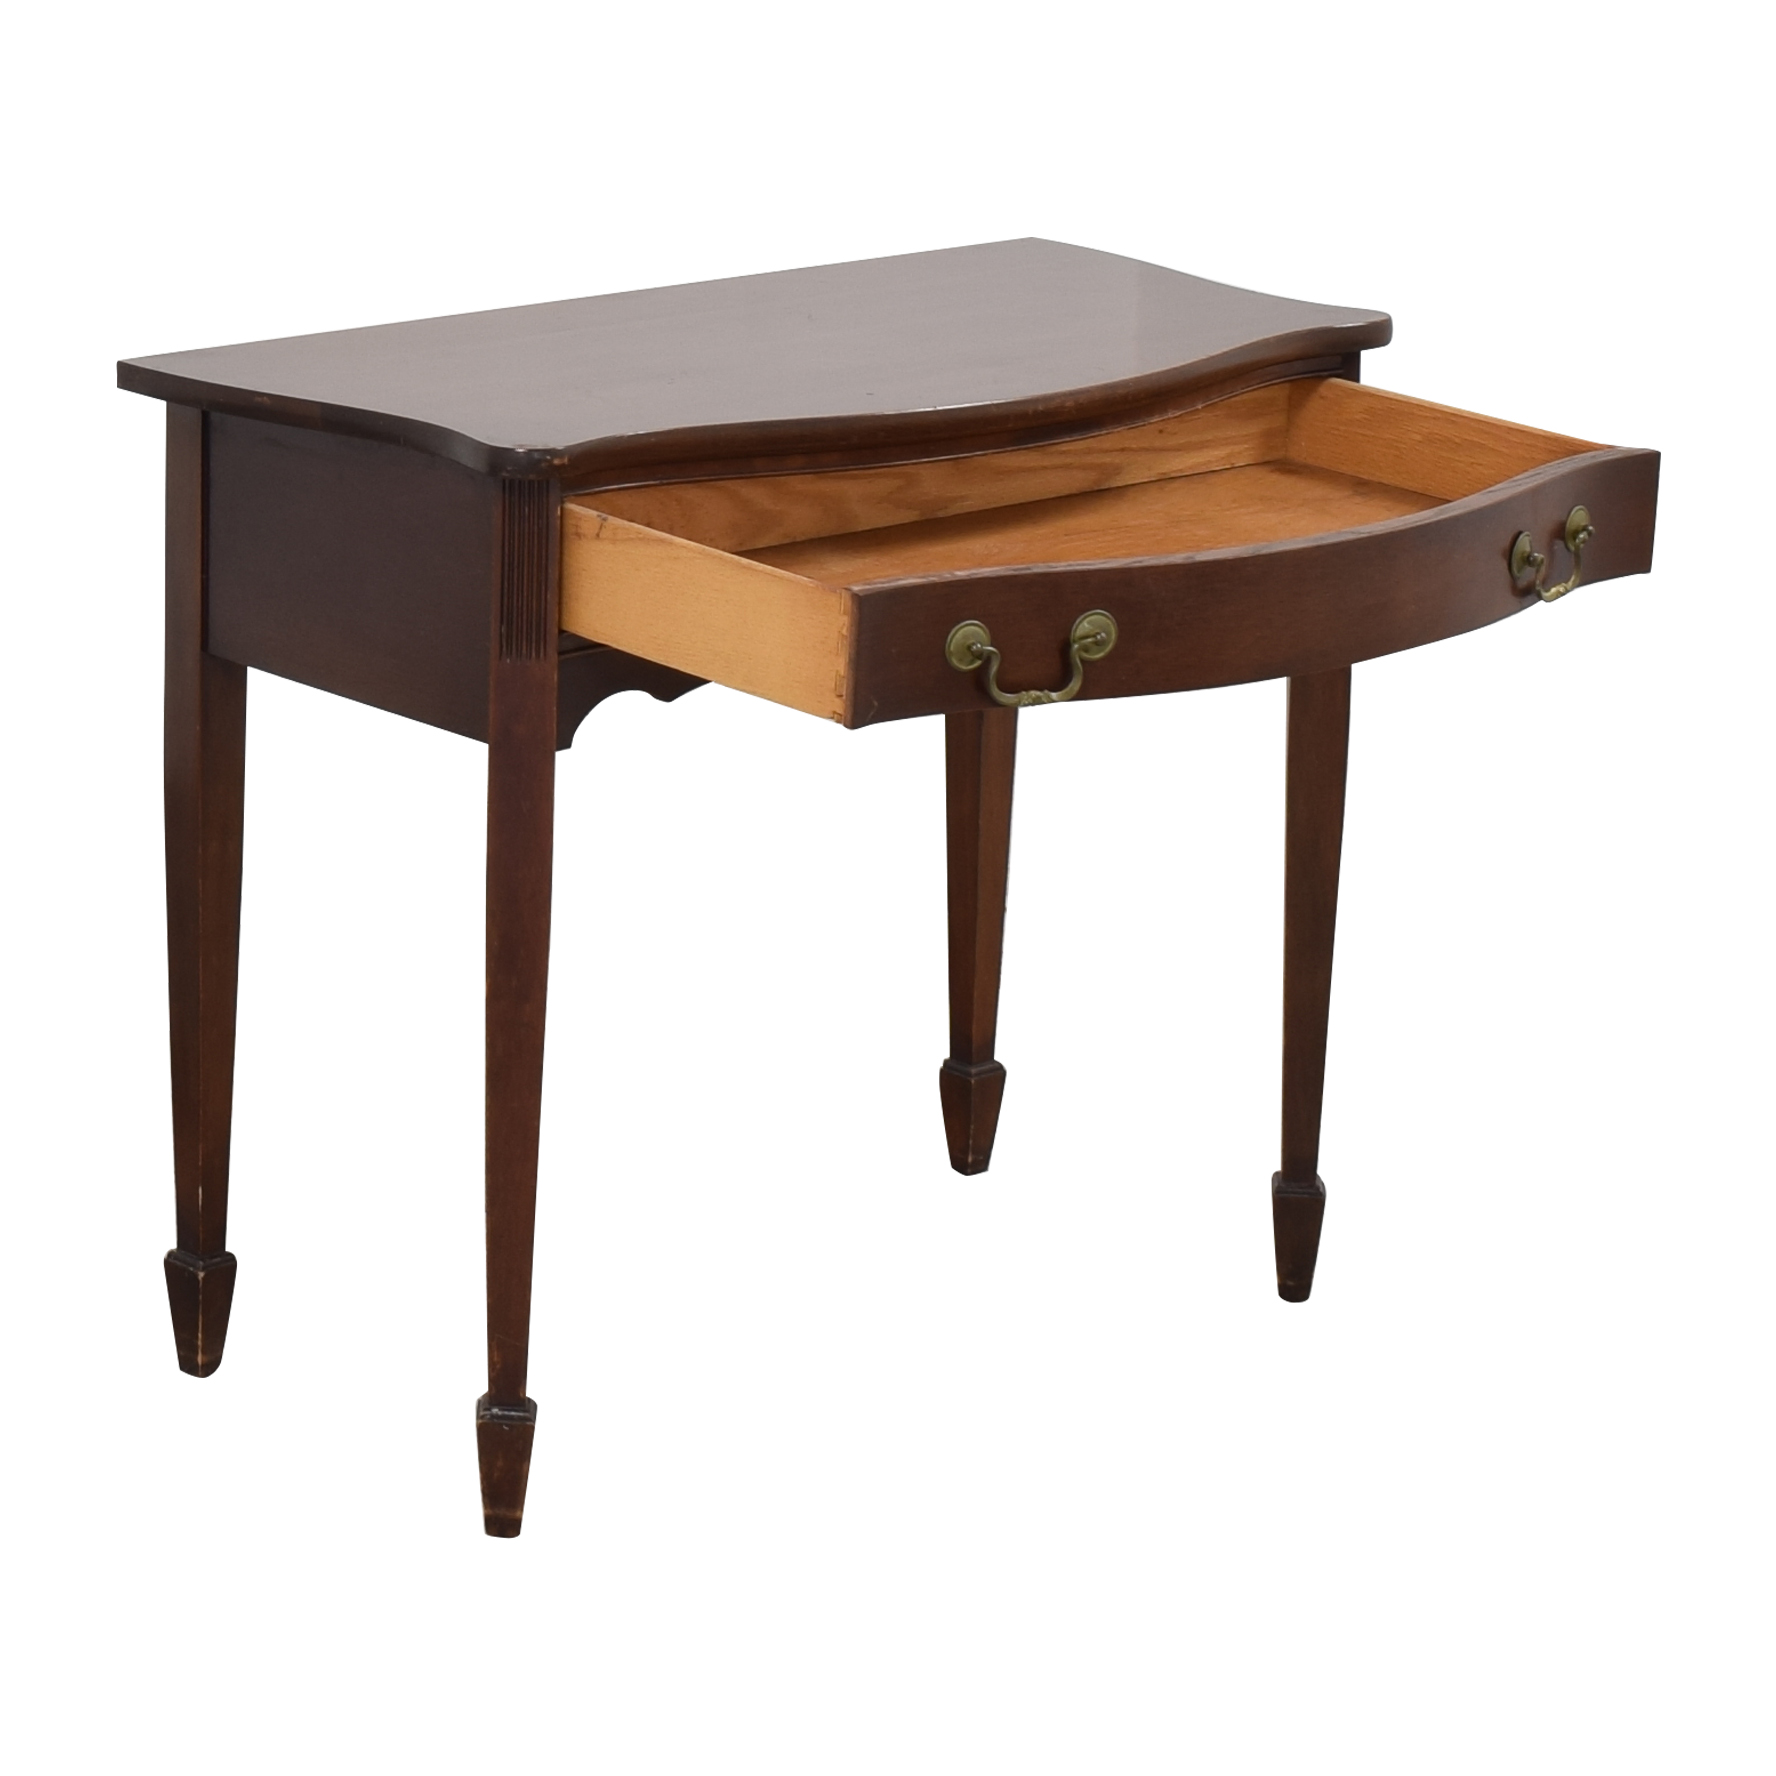 Foyer or Hall Table / Tables